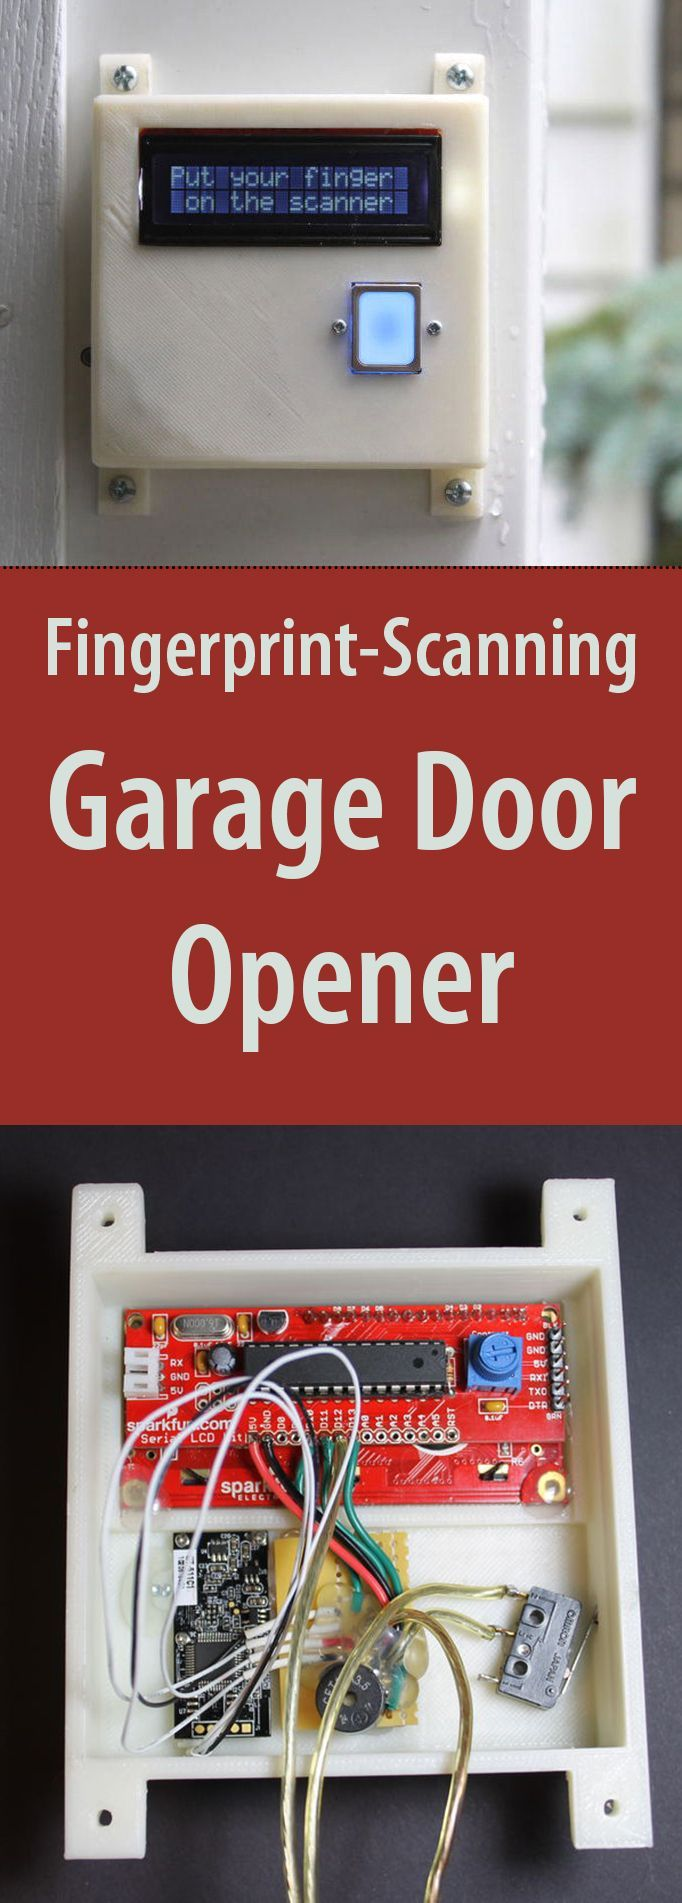 Never get locked out again! Your fingerprint is the key with this DIY high tech door opening device.